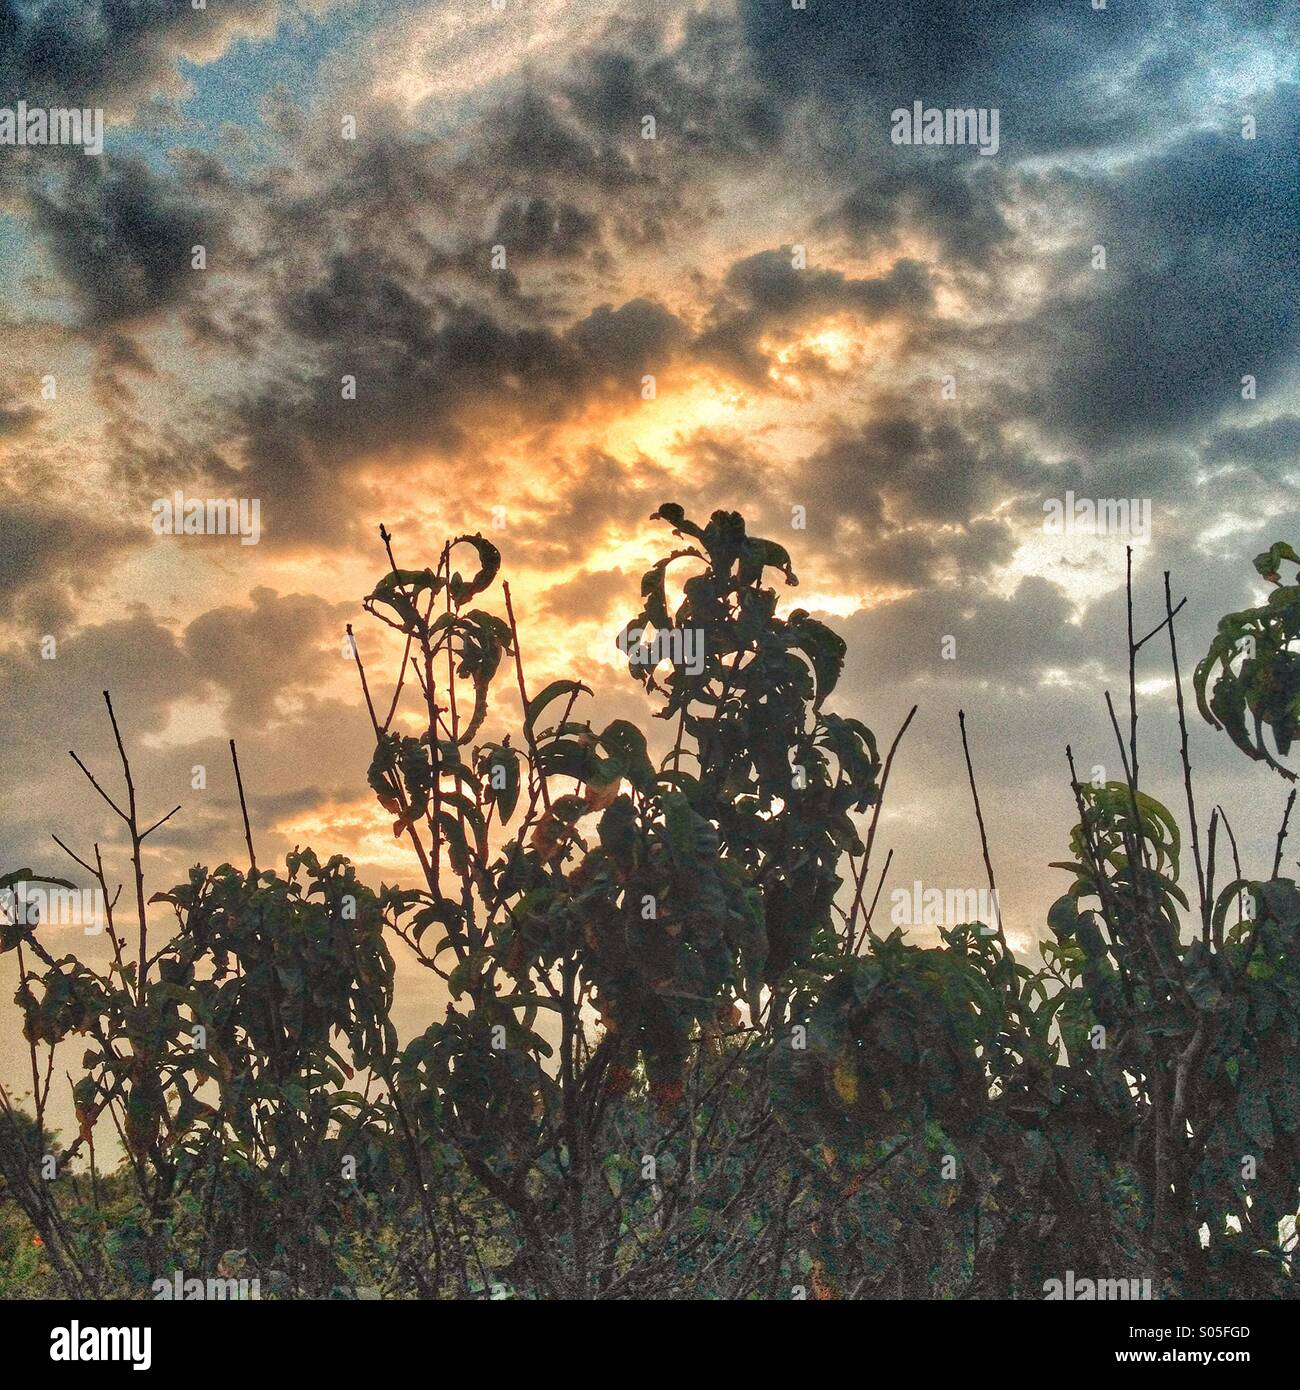 Tall weeds against a cloudy sunrise sky - Stock Image